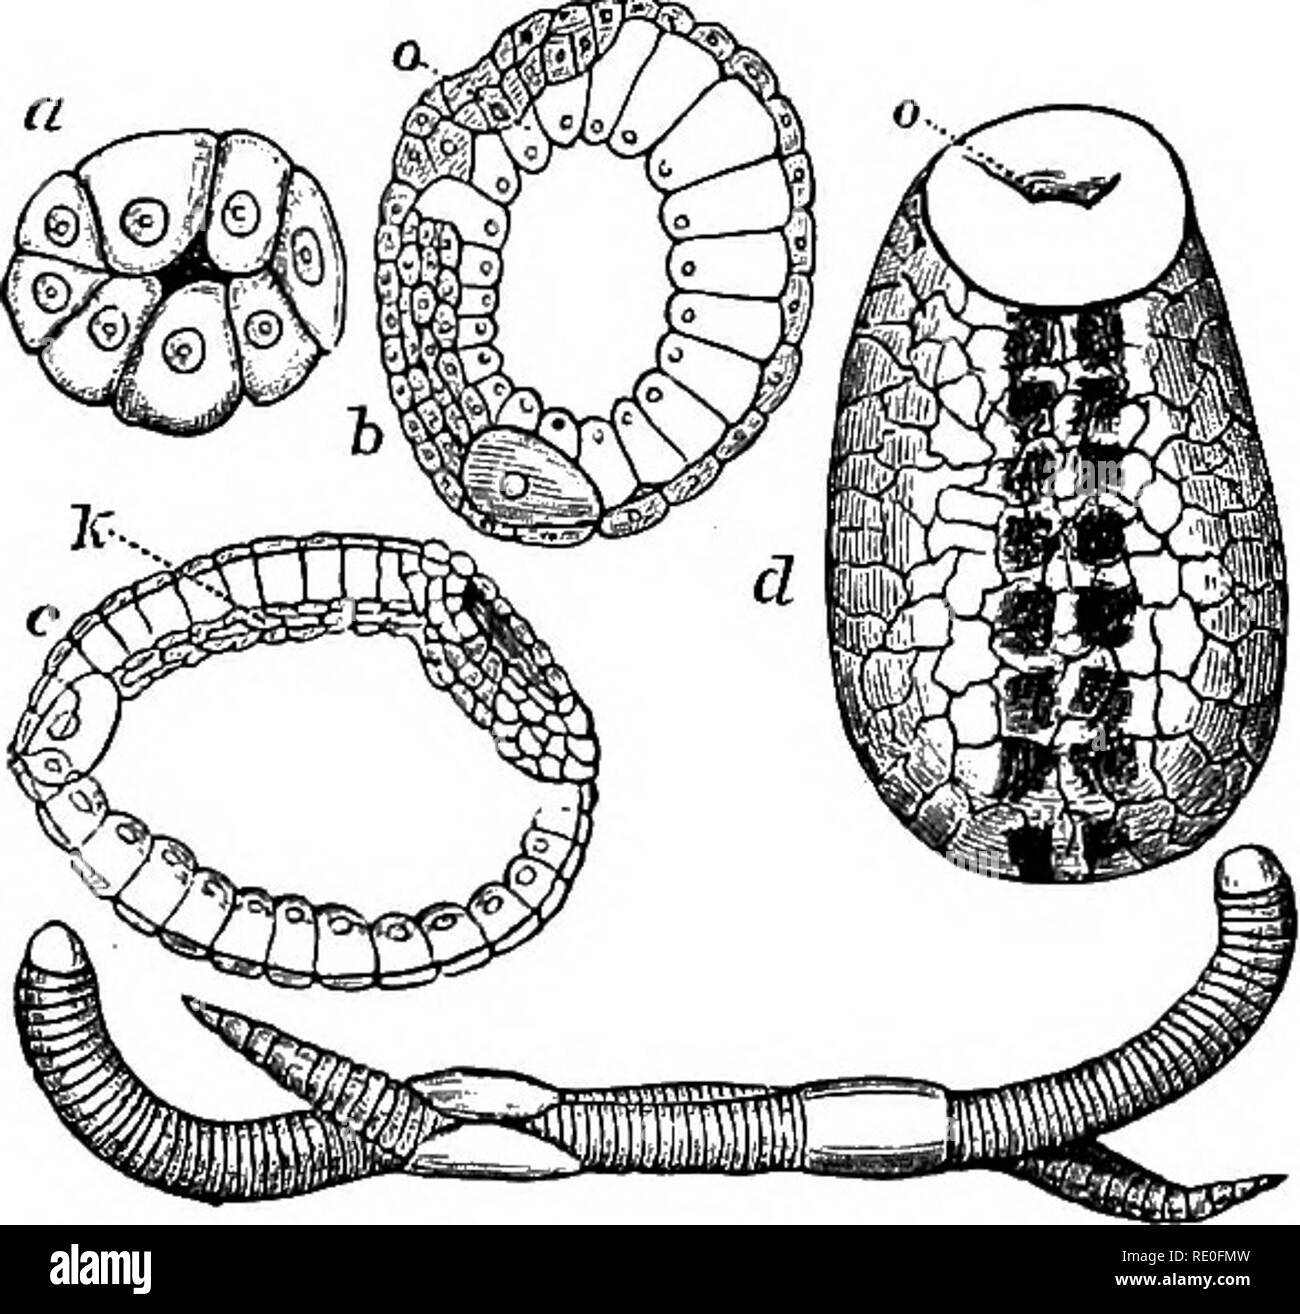 . Zoology for high schools and colleges. Zoology. 210 ZOOLOGY. etc., as well as oyer the ground, by minvite, short, curved setse or bristles, which are deeply inserted in the muscular walls of the body, and arranged in four rows along each side of the body. The alimentary canal is straight, the stomach has three 2:)airs of ^mall lateral blind sacs (coeca), and the intestine, which is externally tubular, contains a thick inter- nal sac-like fold called a typMosole. The segmental organs are highly convoluted tubes, a pair to each segment of the body, except a few near the head, and opening inter - Stock Image